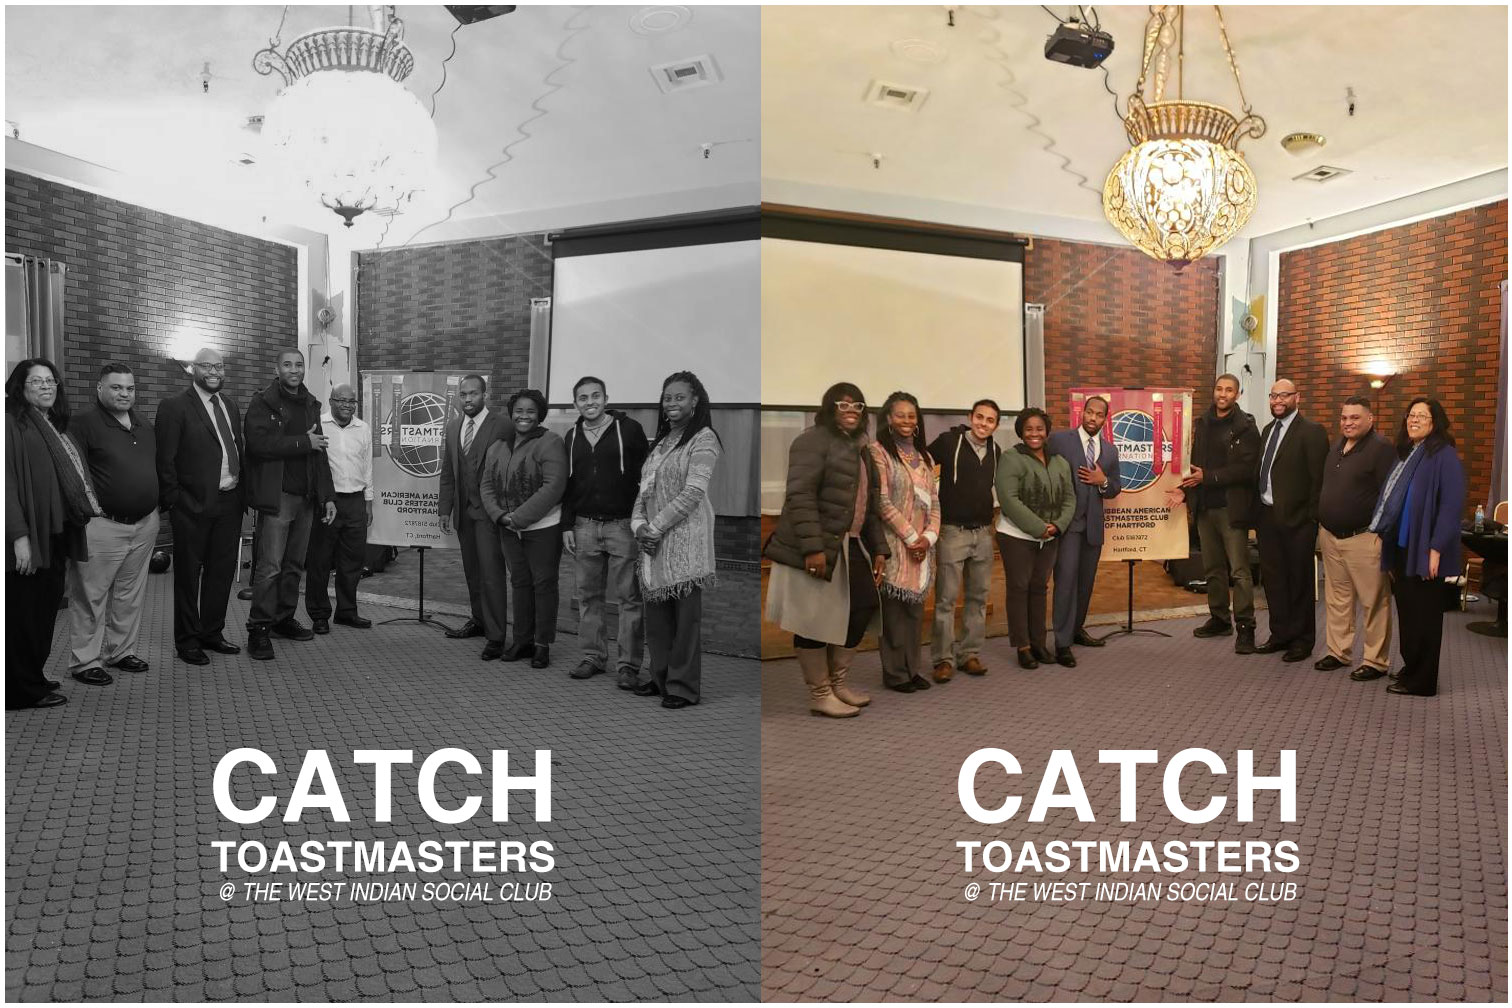 CATCH TOASTMASTERS - THE WEST INDIAN SOCIAL CLUB - PUBLIC SPEAKING & LEADERSHIP DEVELOPMENT